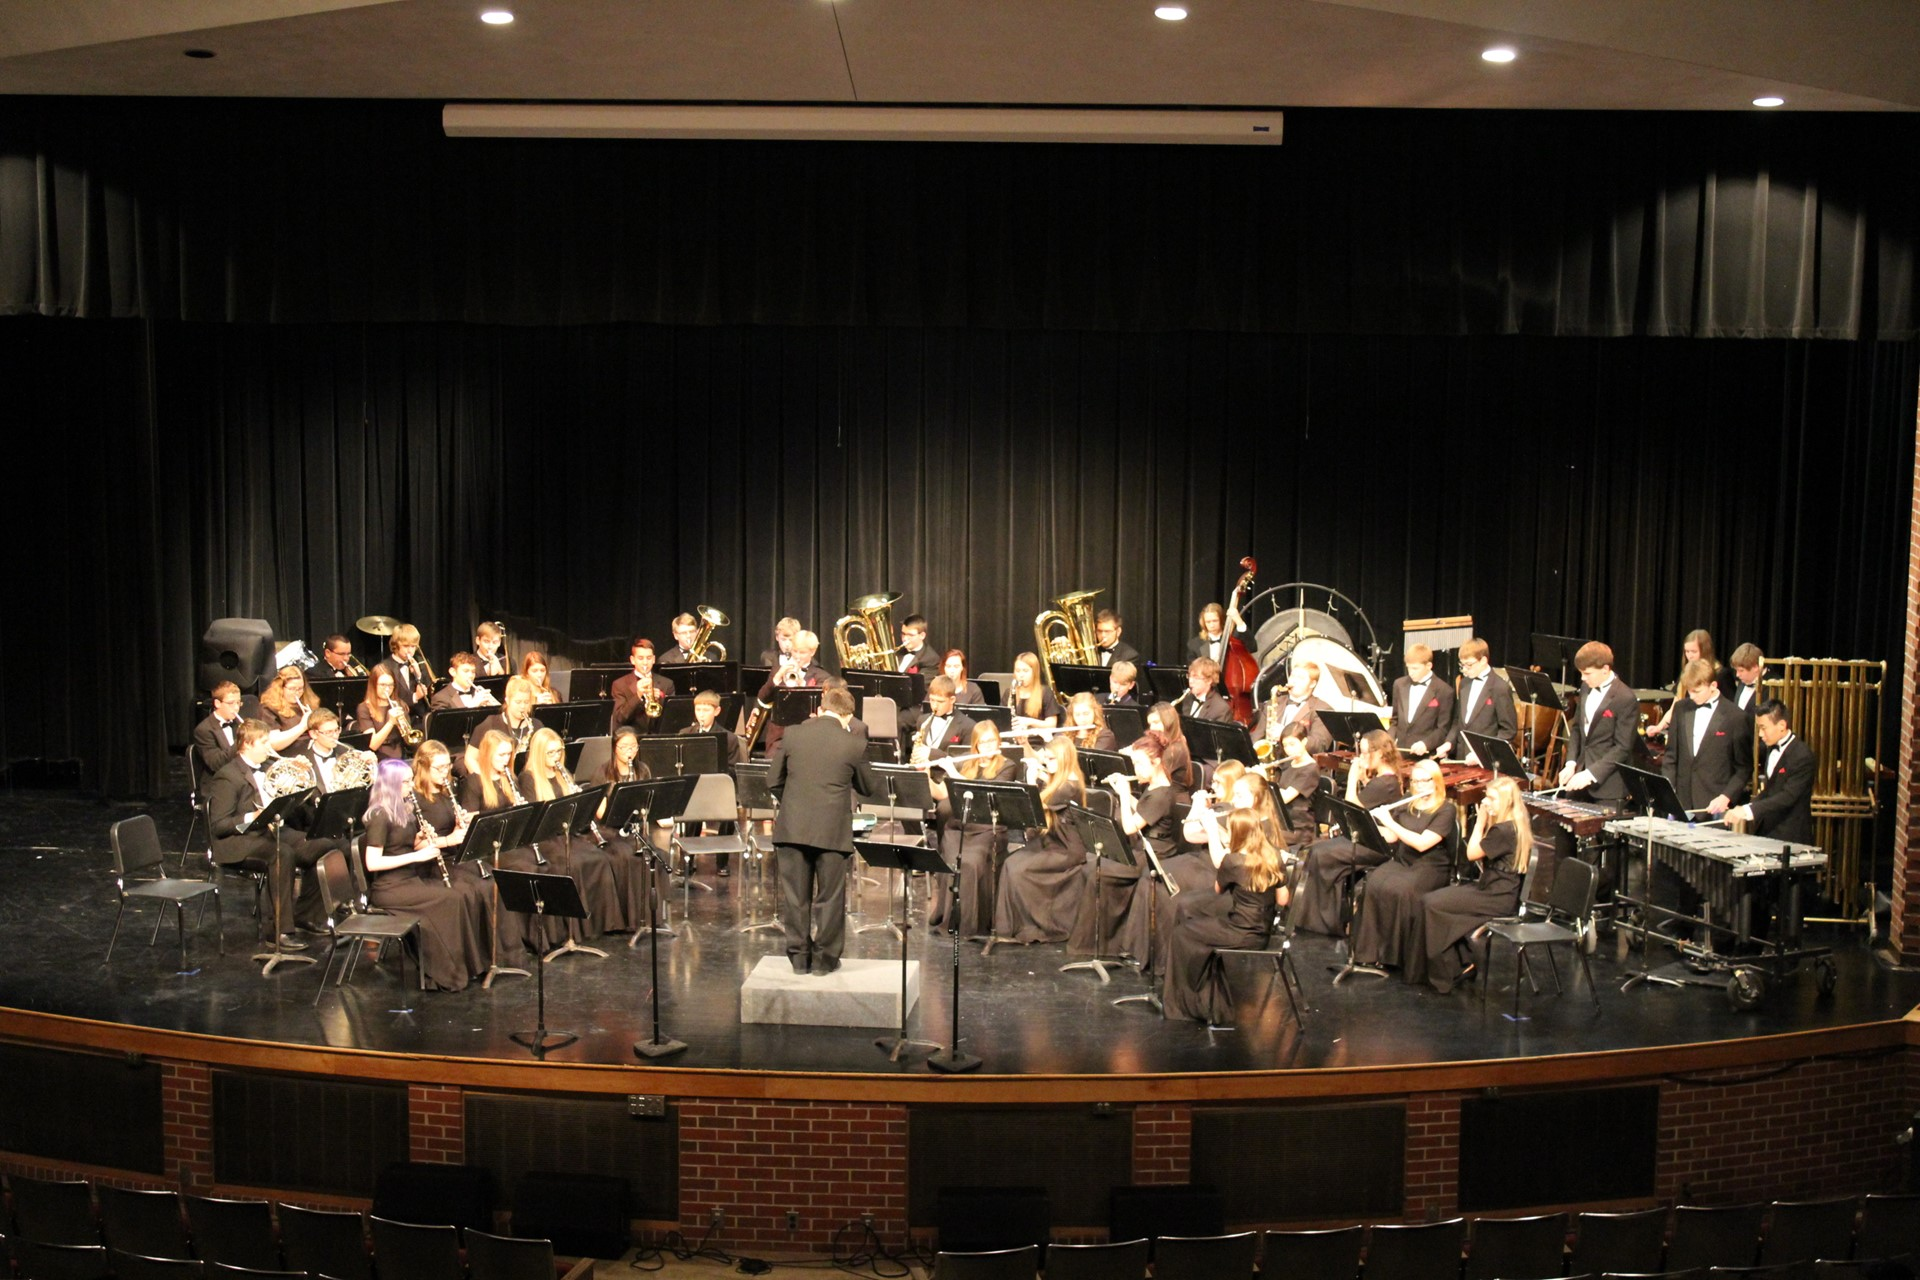 High school concert band playing on stage